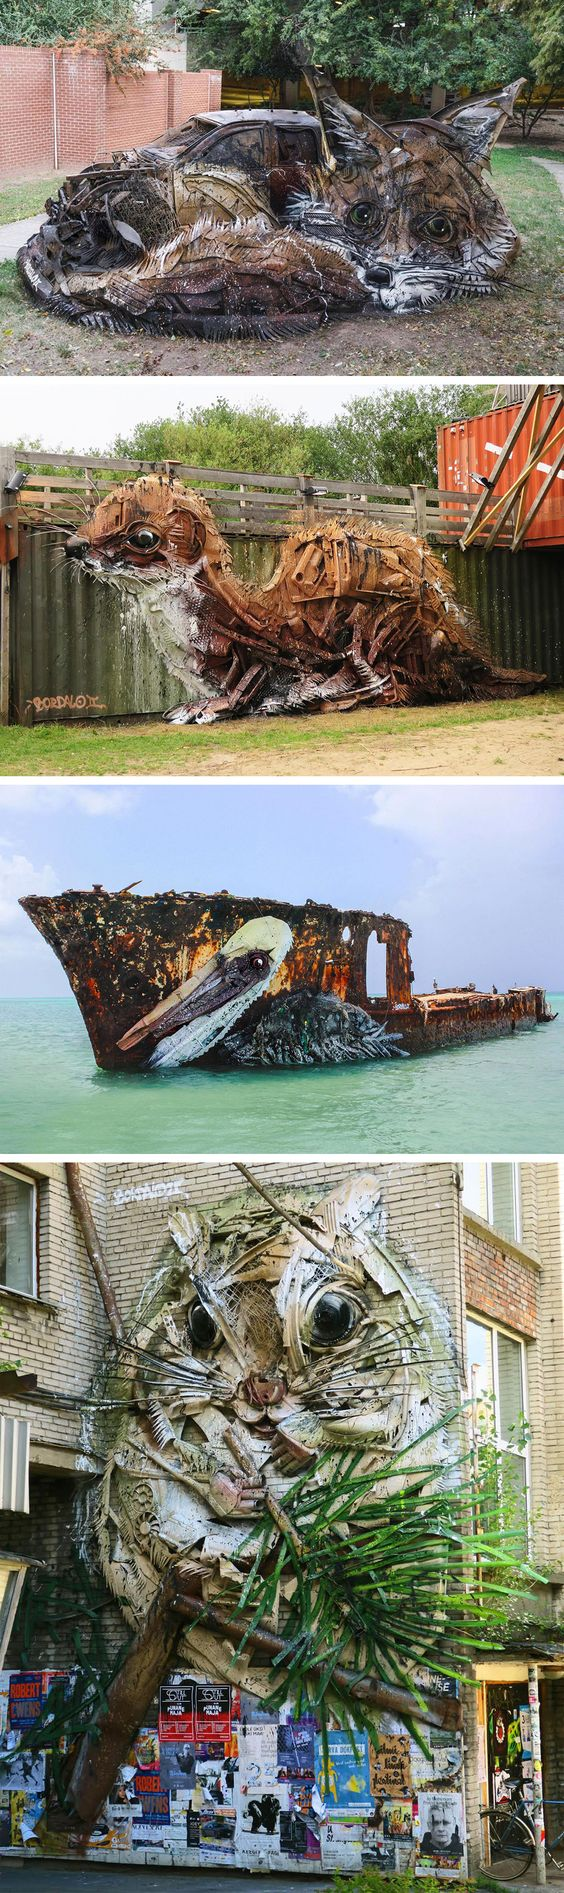 Trash Sculpures by Bordalo ll Spring up around the globe. Uncontrollable production of waste. From Colossal.